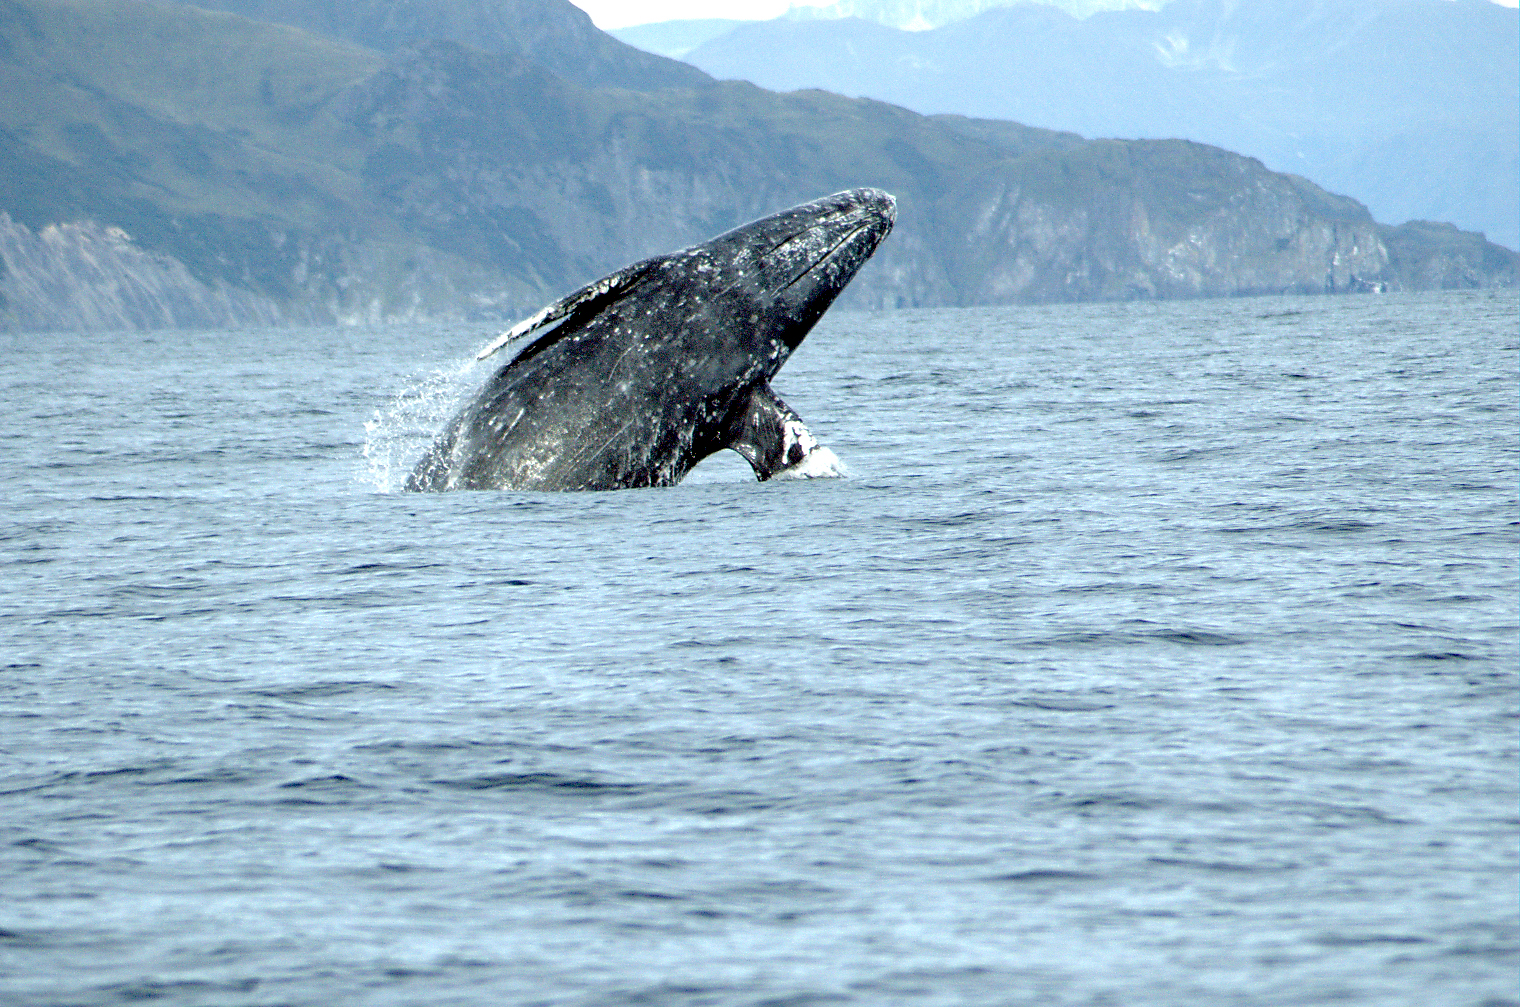 Feds Propose New Rules to Protect Whales, Dolphins in Other Countries